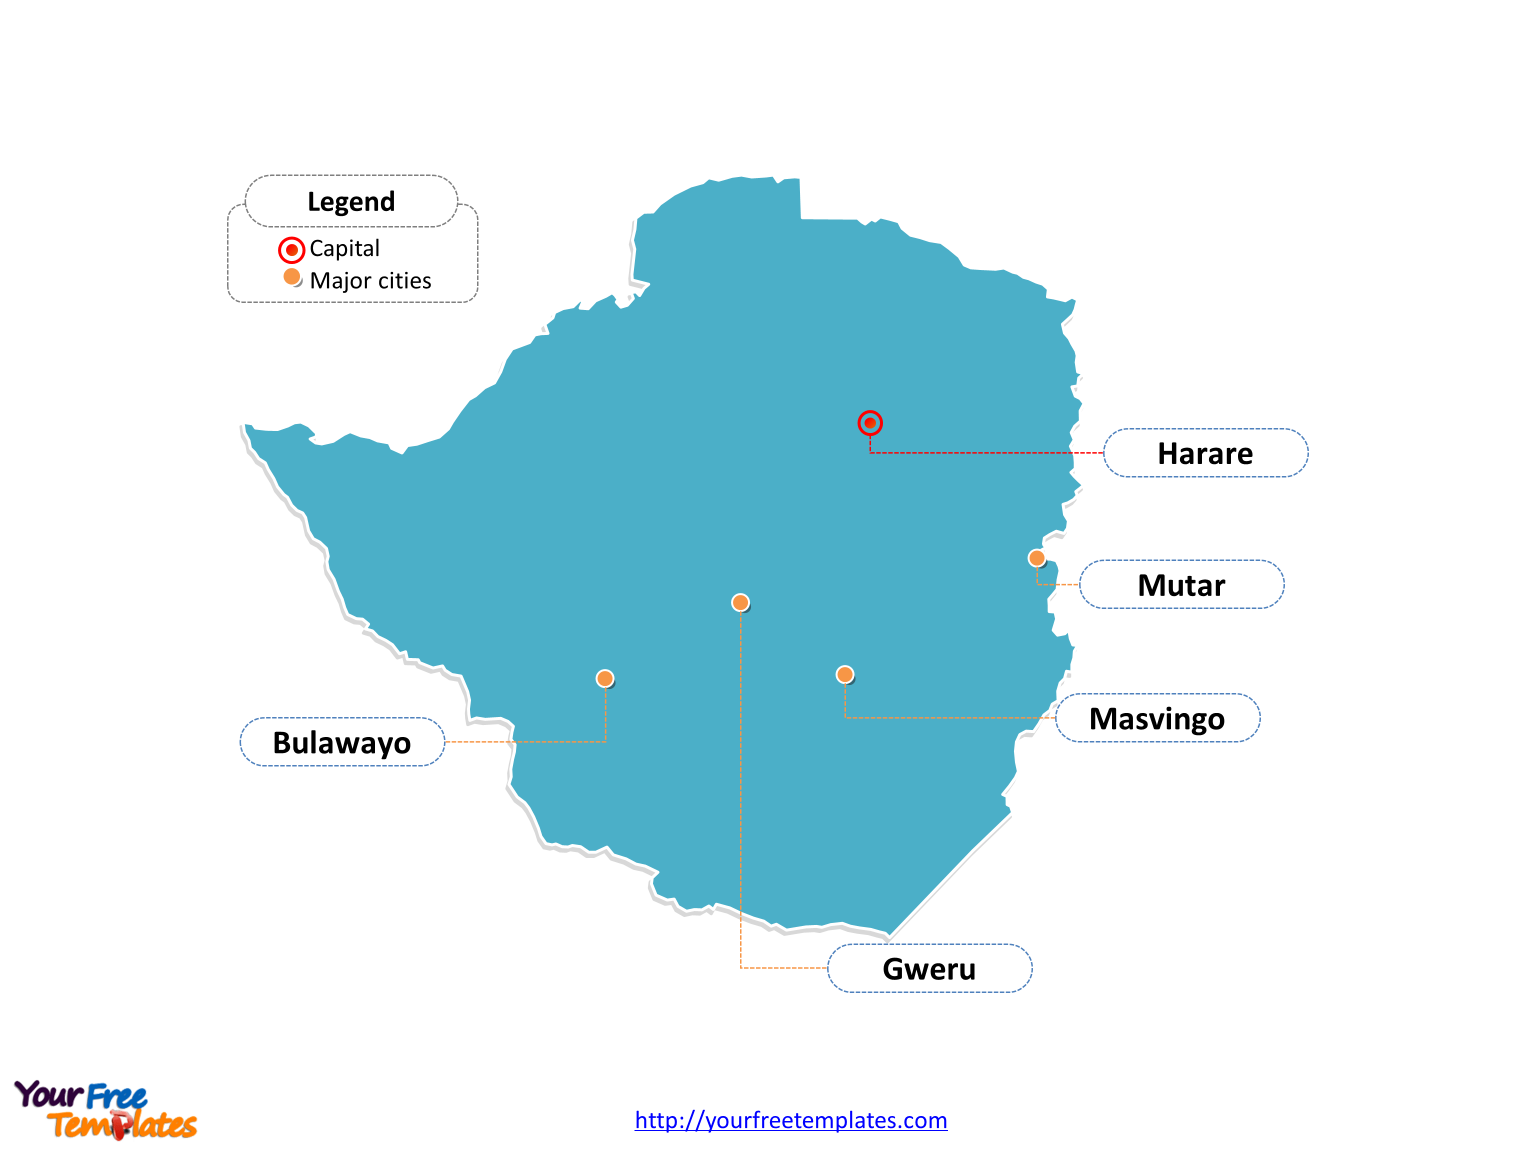 Zimbabwe Outline map labeled with cities